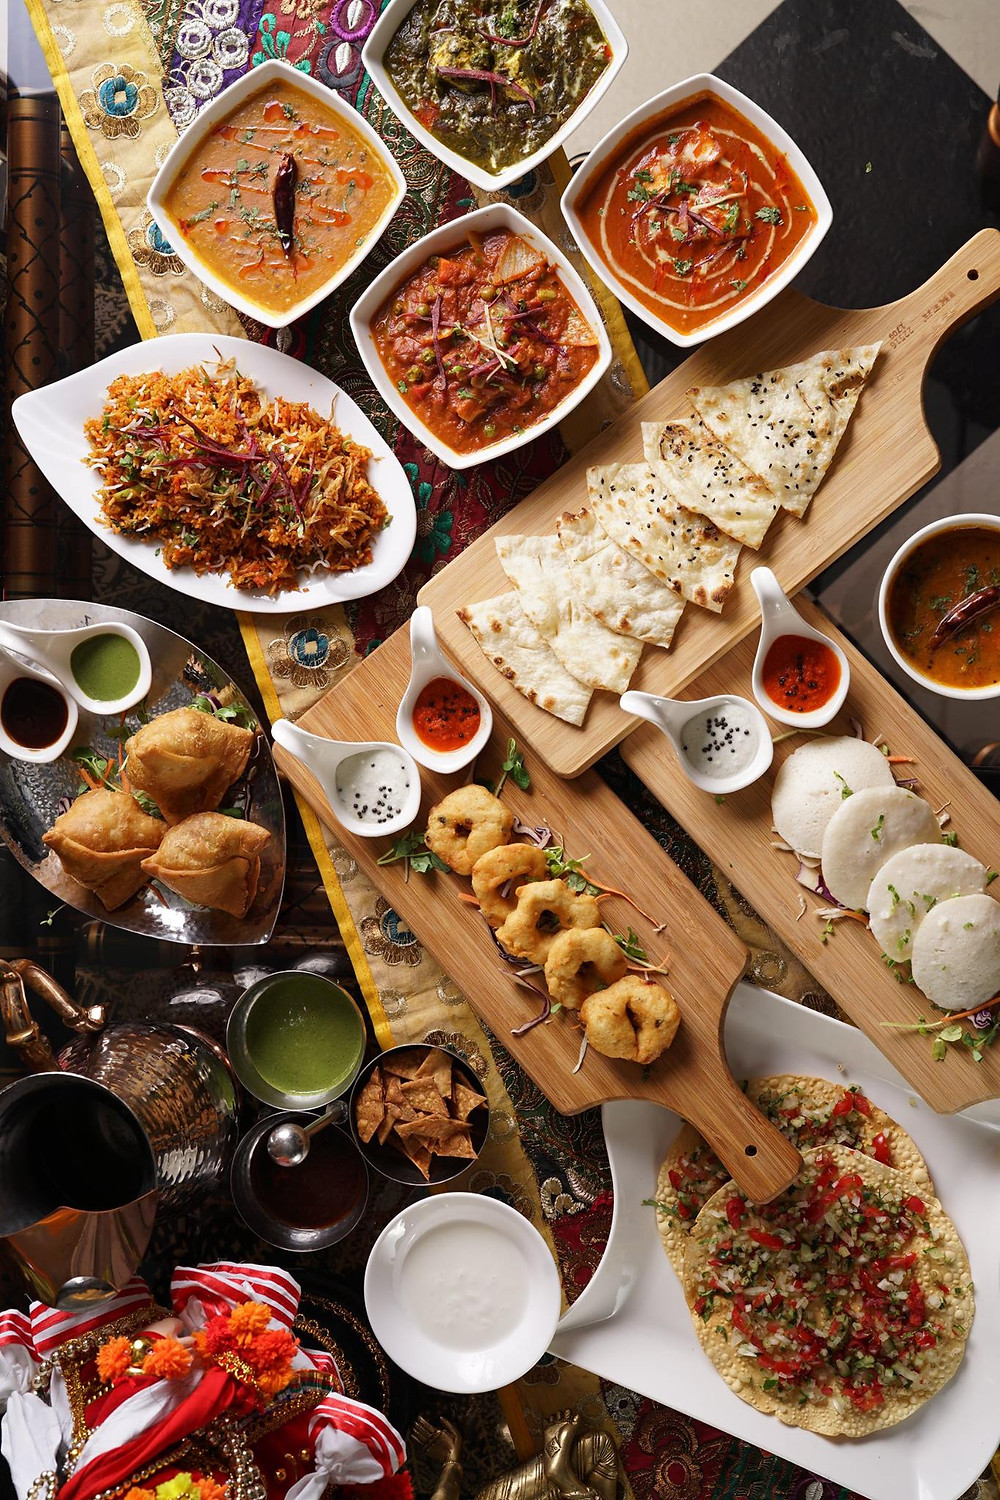 The Variety of Indian cuisine at Mayur Indian Kitchen makes us unique